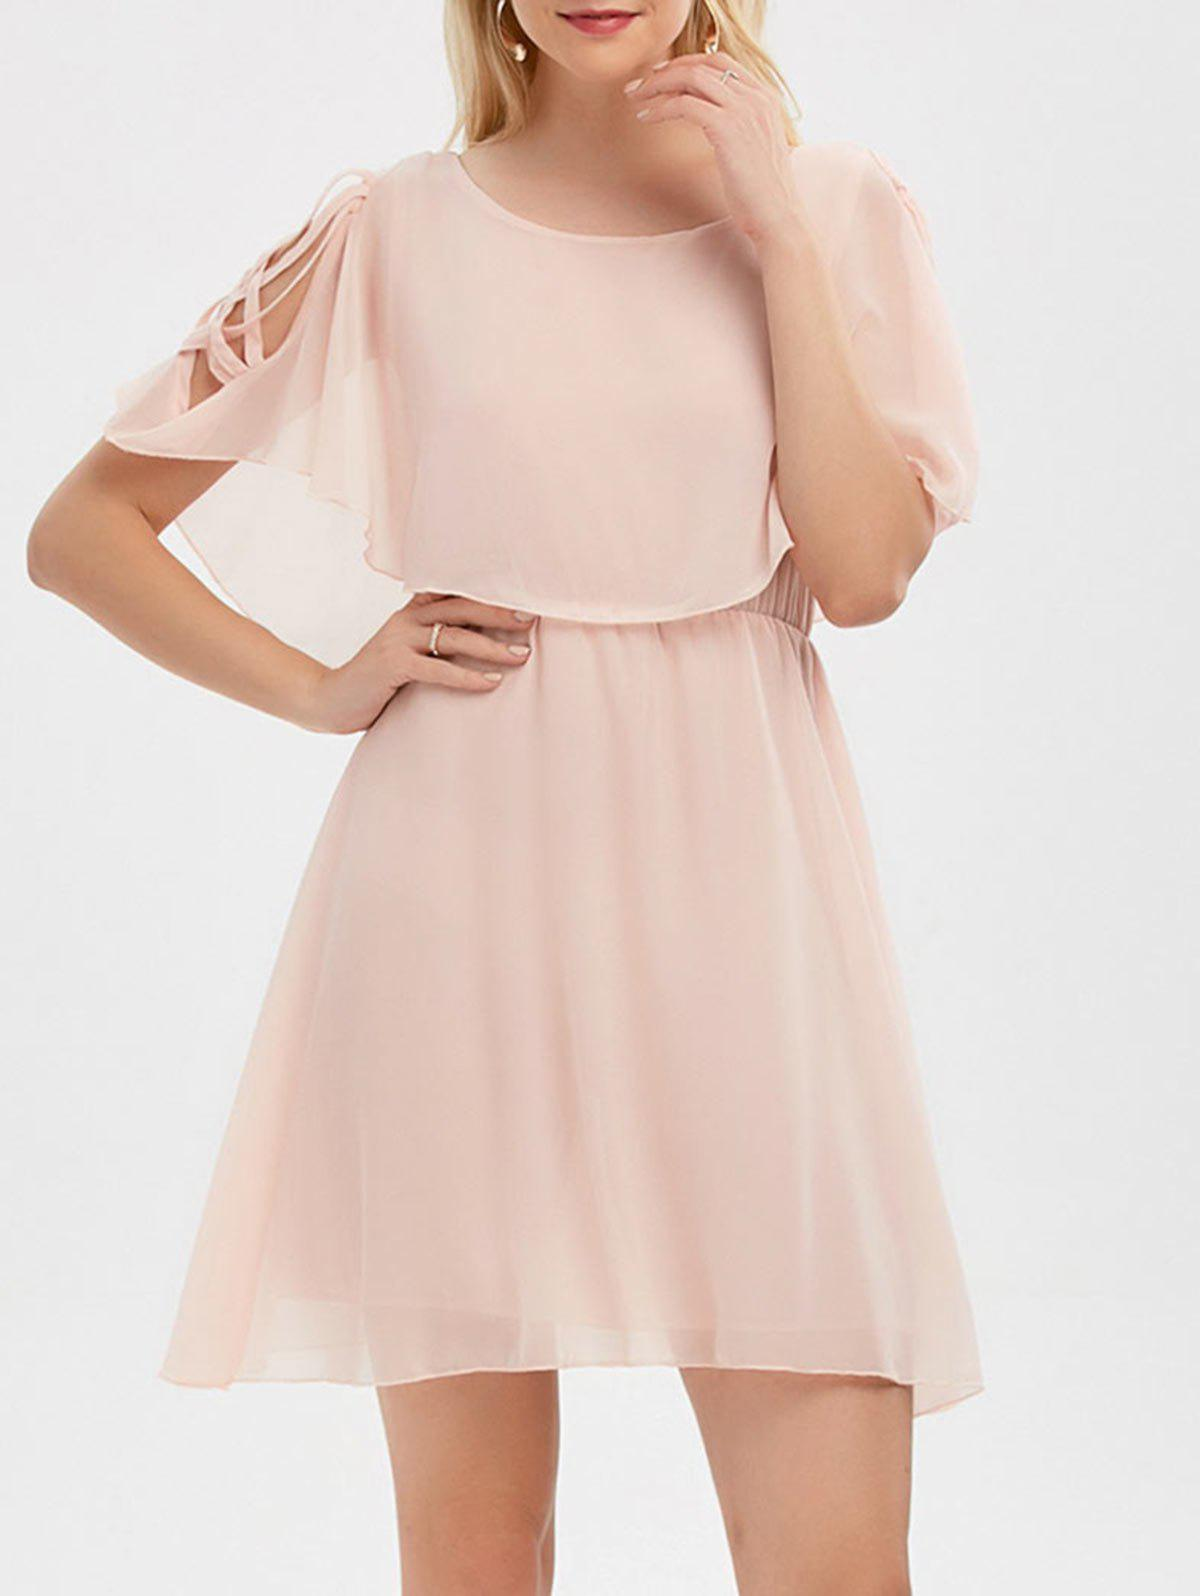 Ruffle Overlay Strappy Chiffon Cold Shoulder Dress - SHALLOW PINK M